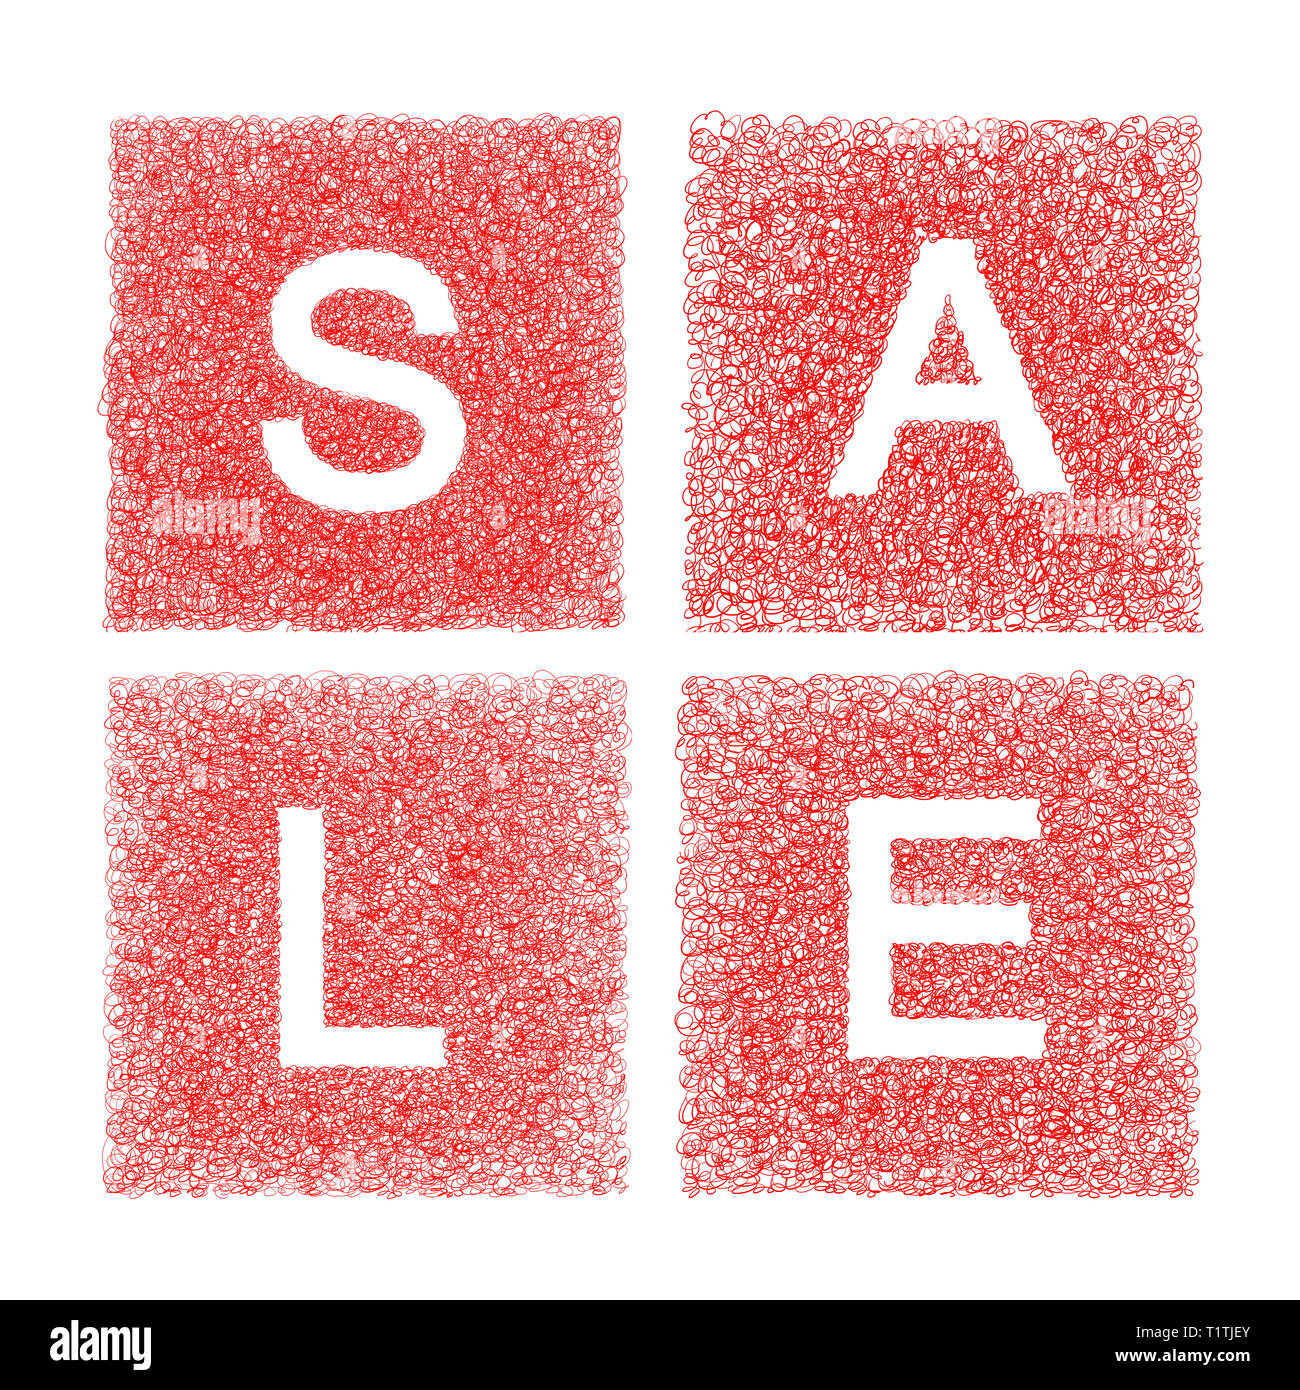 Sale written with handmade letters - concept image - Stock Image